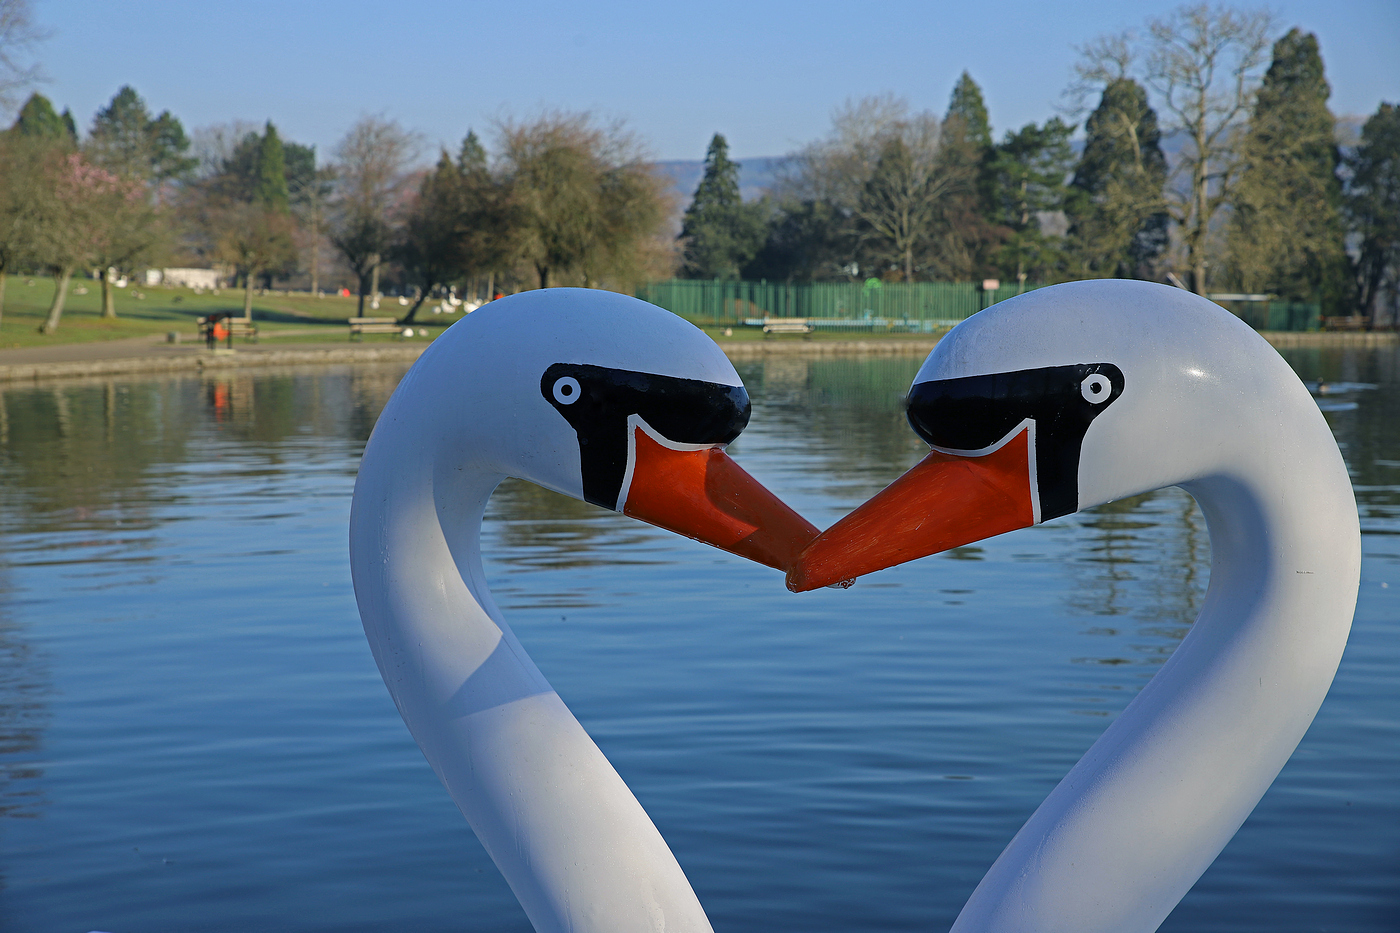 swan-boats-by-wendy-donovan